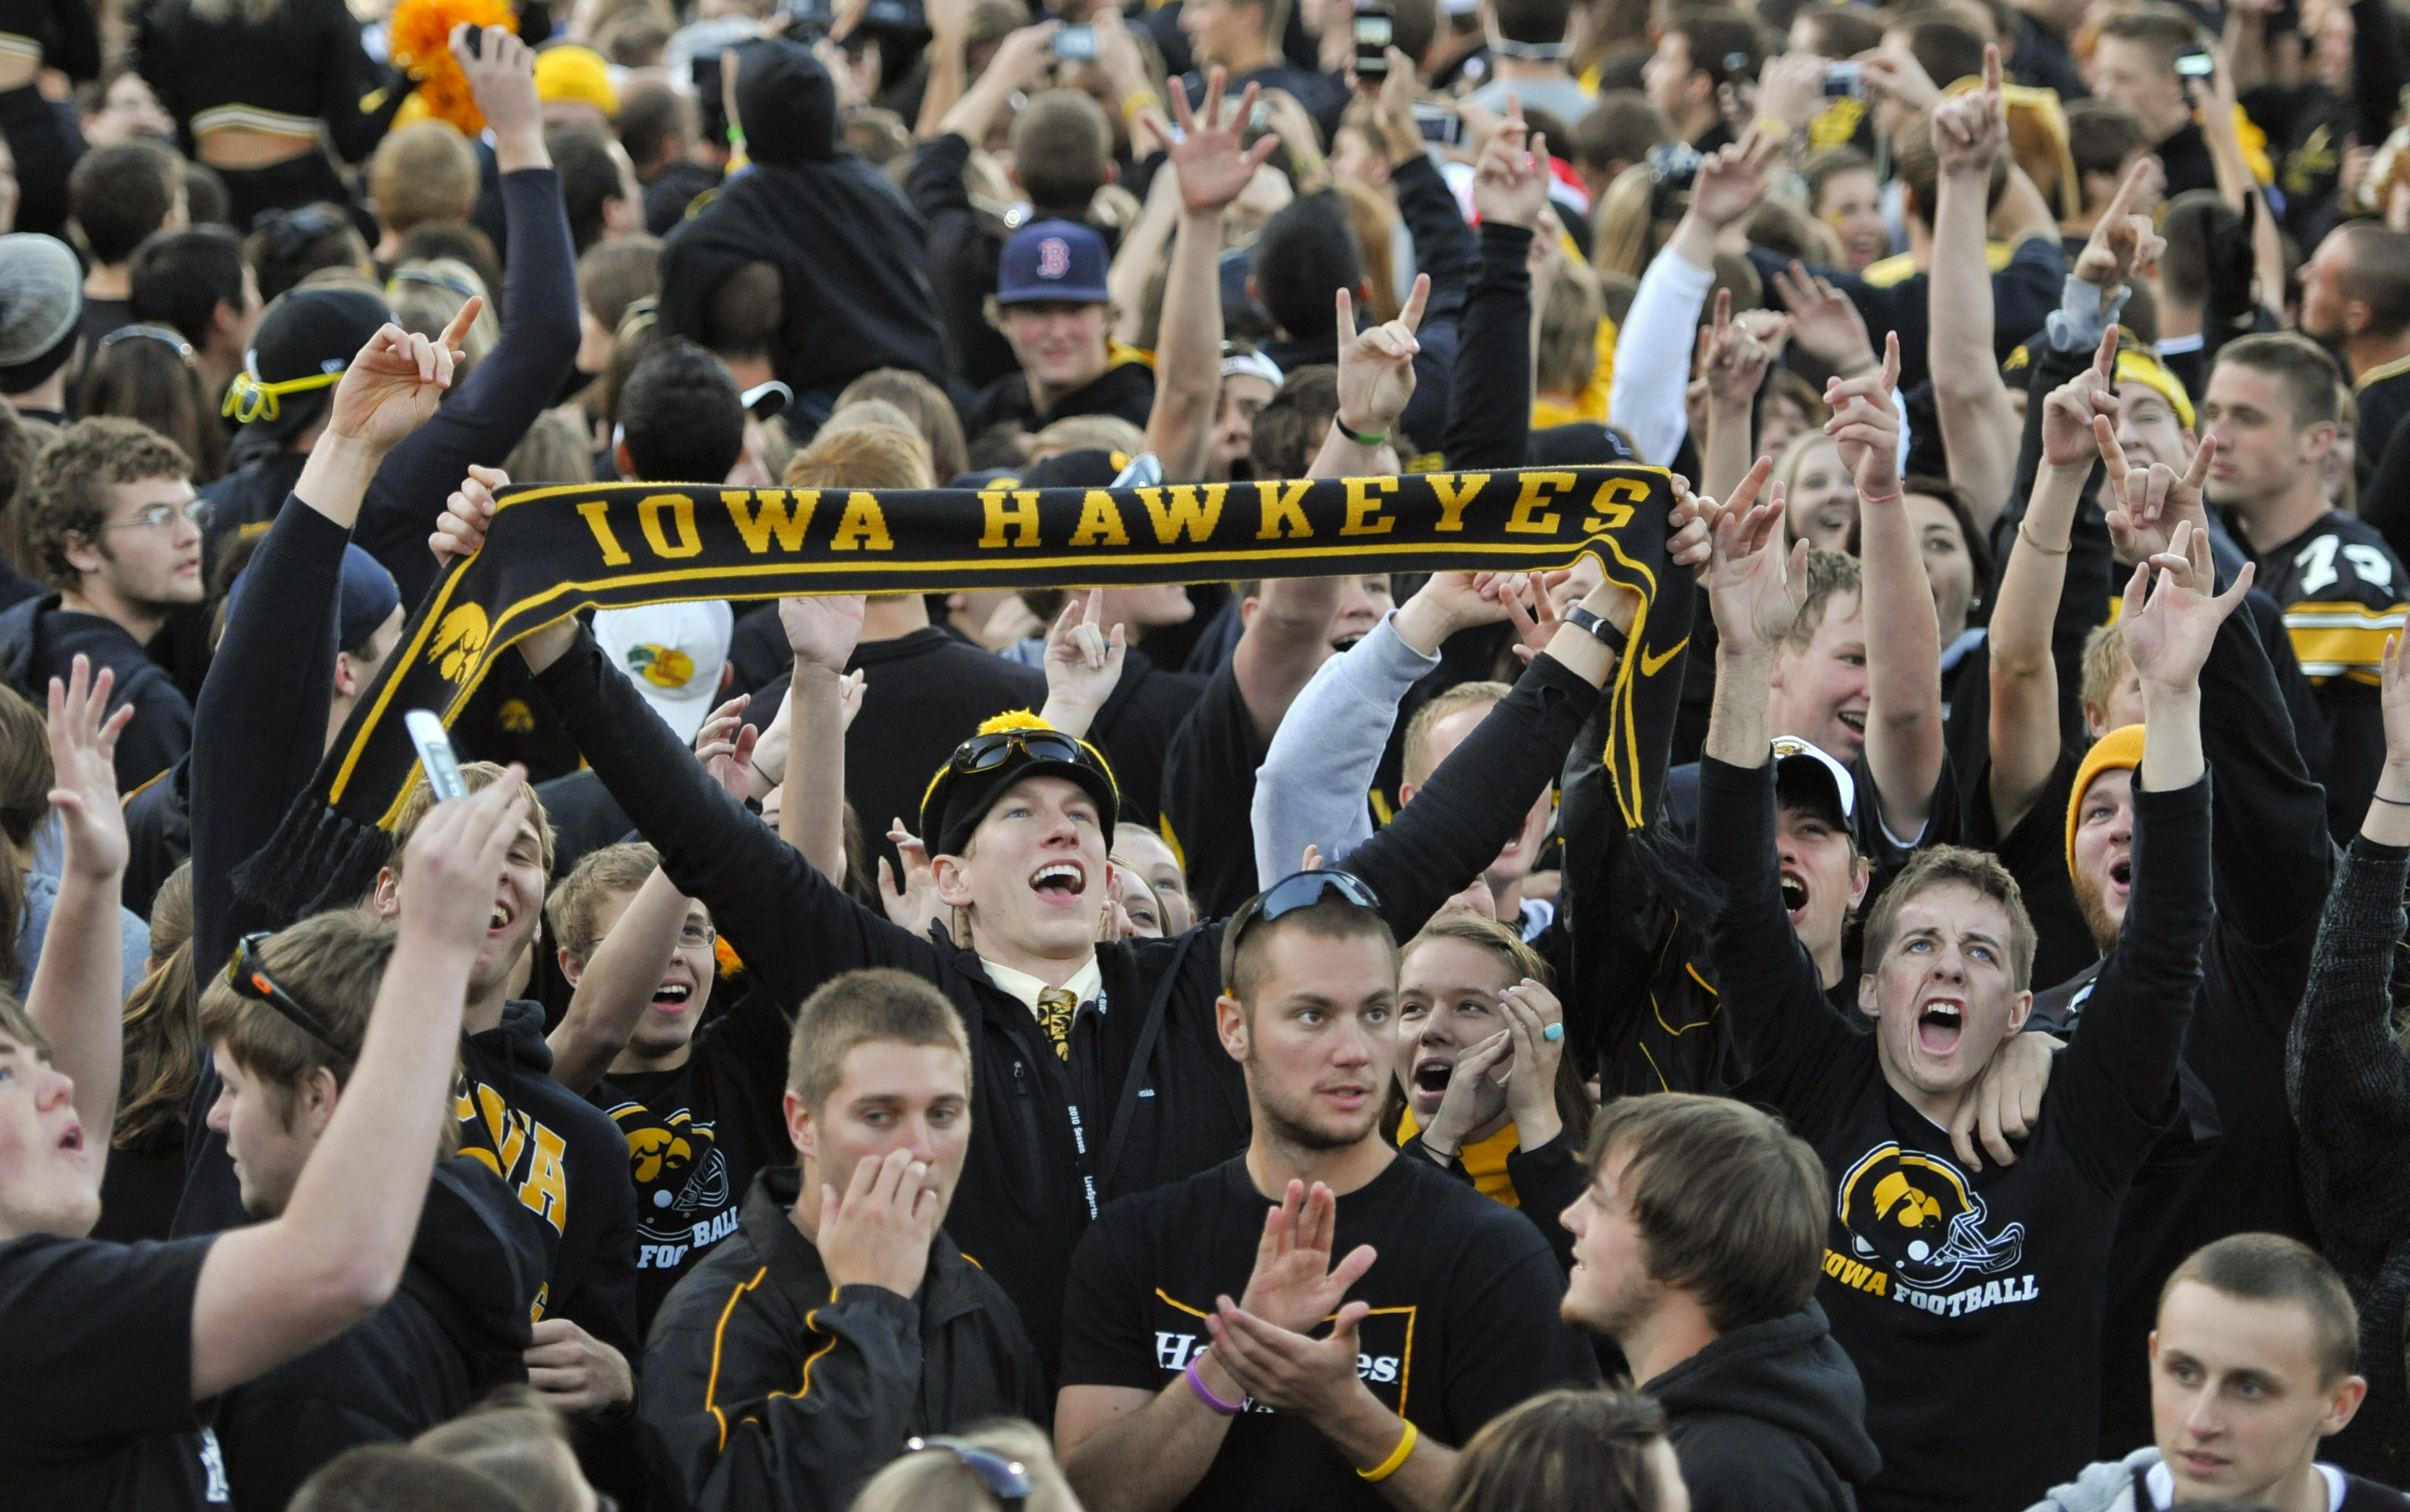 IOWA CITY, IA - OCTOBER 30: University of Iowa Hawkeyes fans celebrate their win over the Michigan State Spartans at Kinnick Stadium on October 30, 2010 in Iowa City, Iowa. Iowa won 37-6 over Michigan State. (Photo by David Purdy/Getty Images)